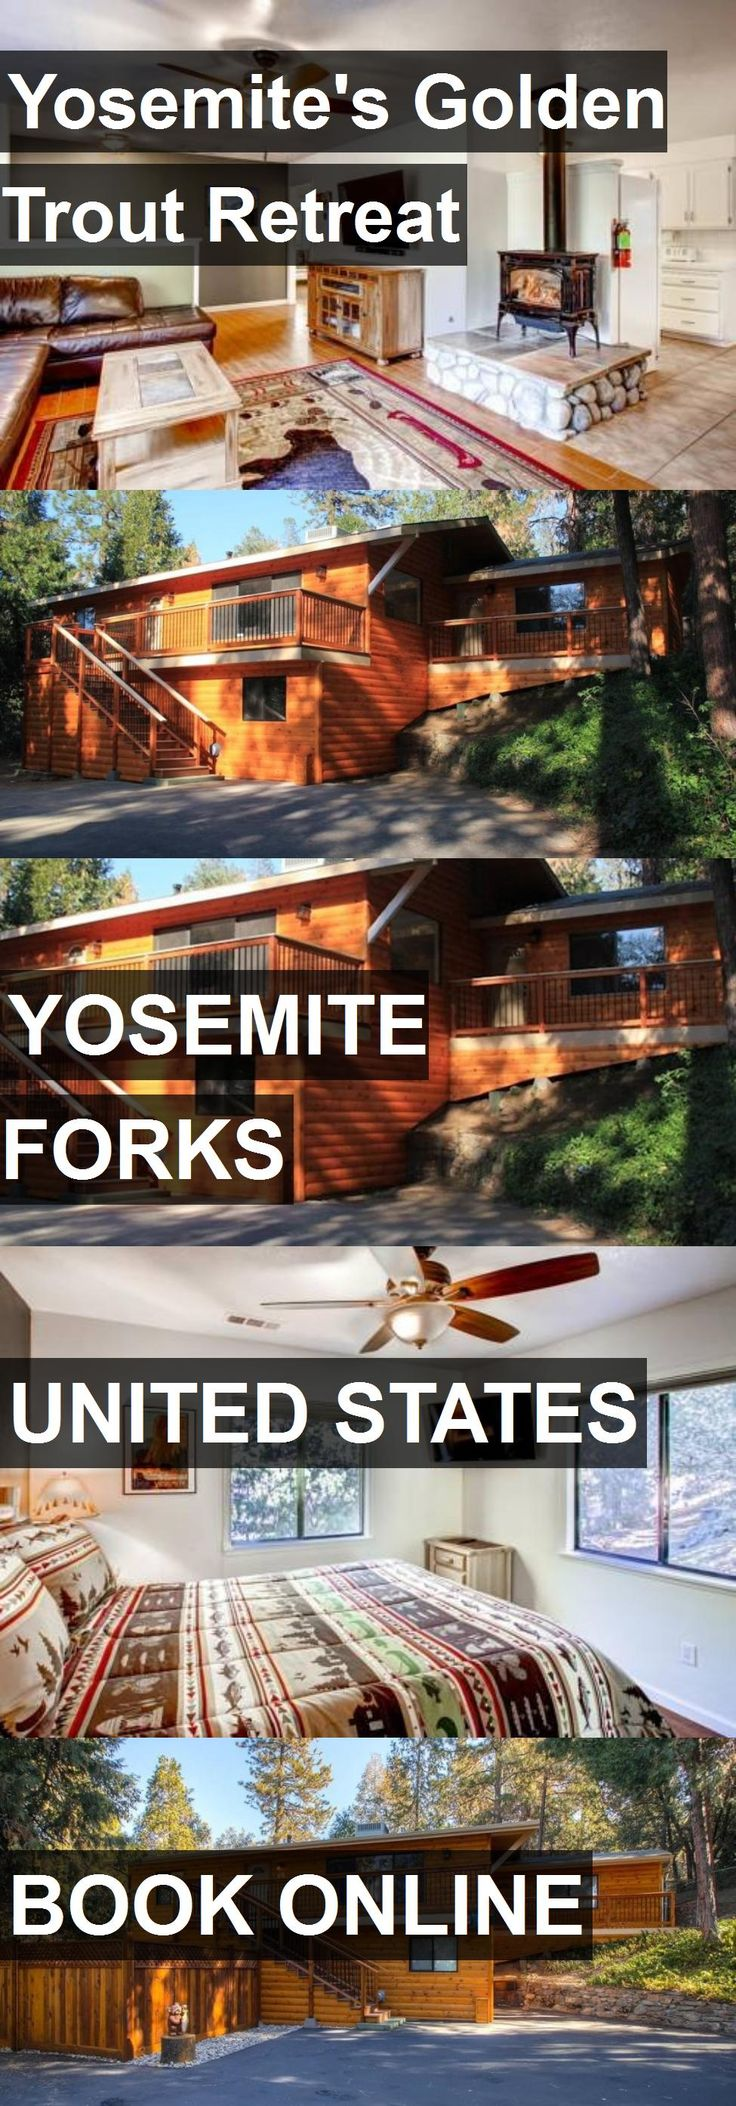 Hotel Yosemite's Golden Trout Retreat in Yosemite Forks, United States. For more information, photos, reviews and best prices please follow the link. #UnitedStates #YosemiteForks #travel #vacation #hotel